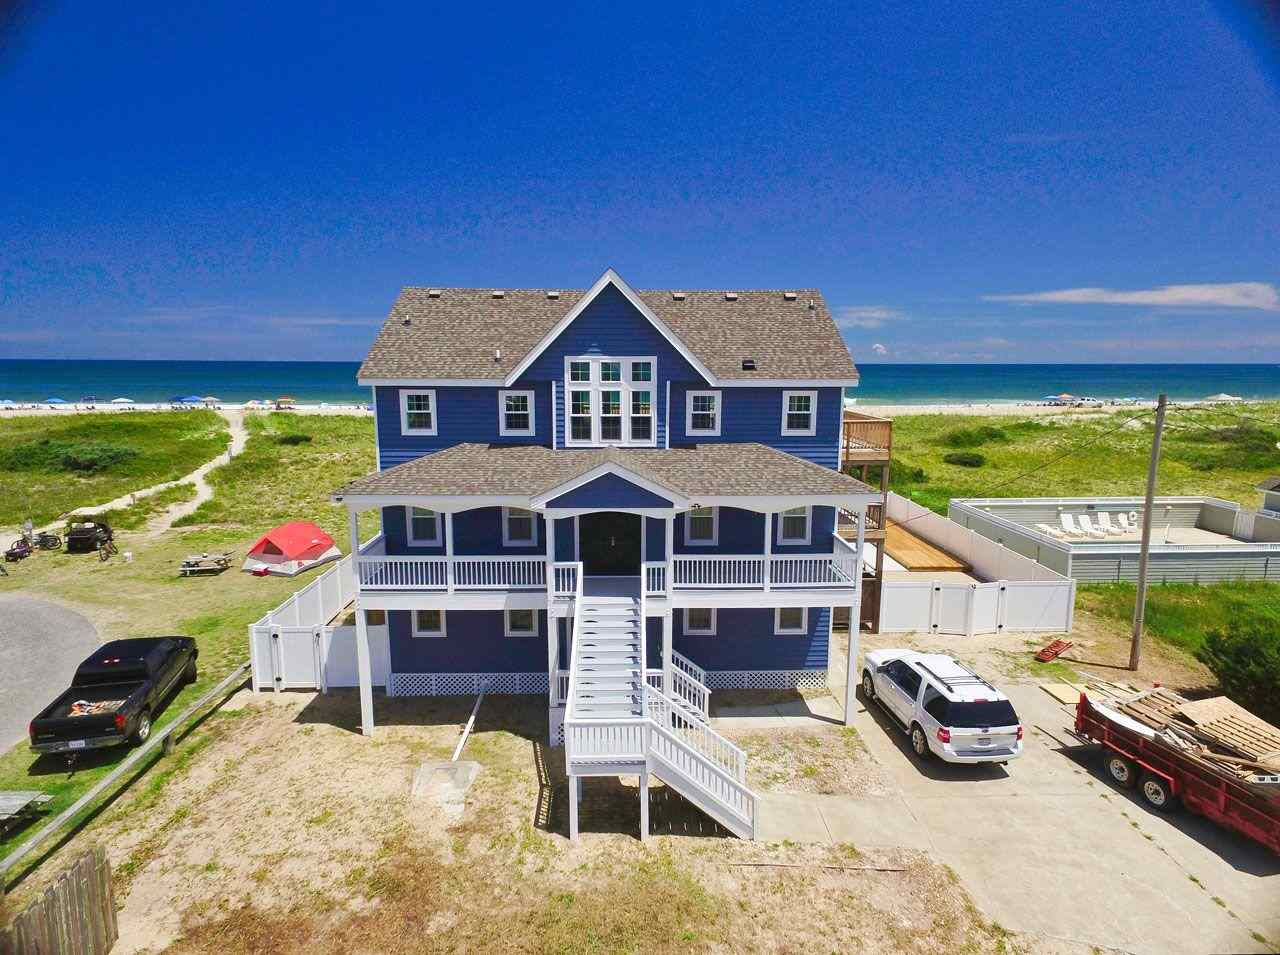 25251 Lee ONeal Lane, Waves, NC 27982, 7 Bedrooms Bedrooms, ,7 BathroomsBathrooms,Residential,For sale,Lee ONeal Lane,97146